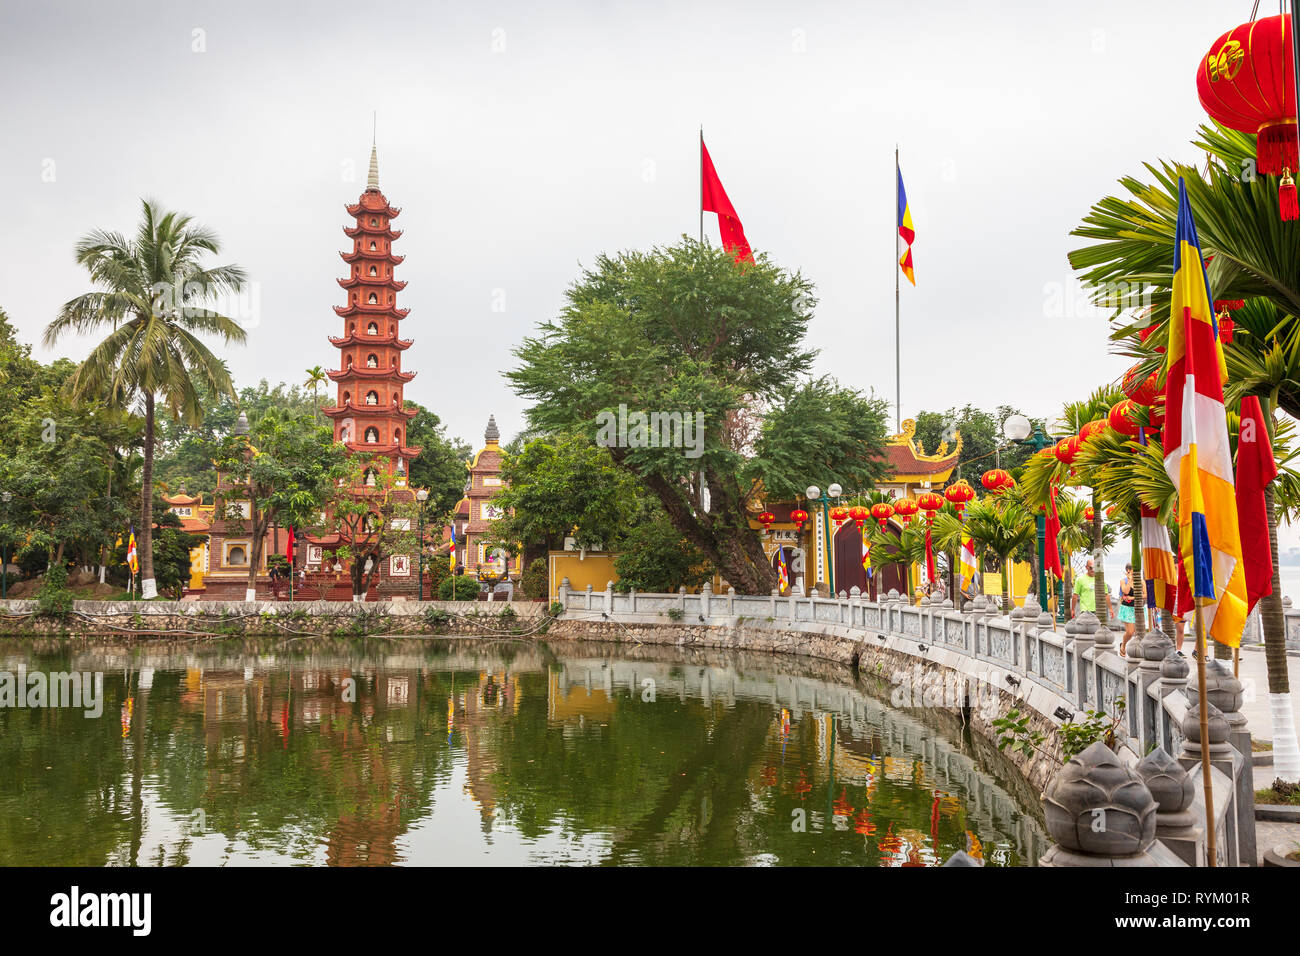 Tran Quoc Pagoda (Chua Tran Quoc) is the oldest pagoda in Hanoi, originally constructed in the sixth century during the reign of Emperor Ly Nam De. - Stock Image